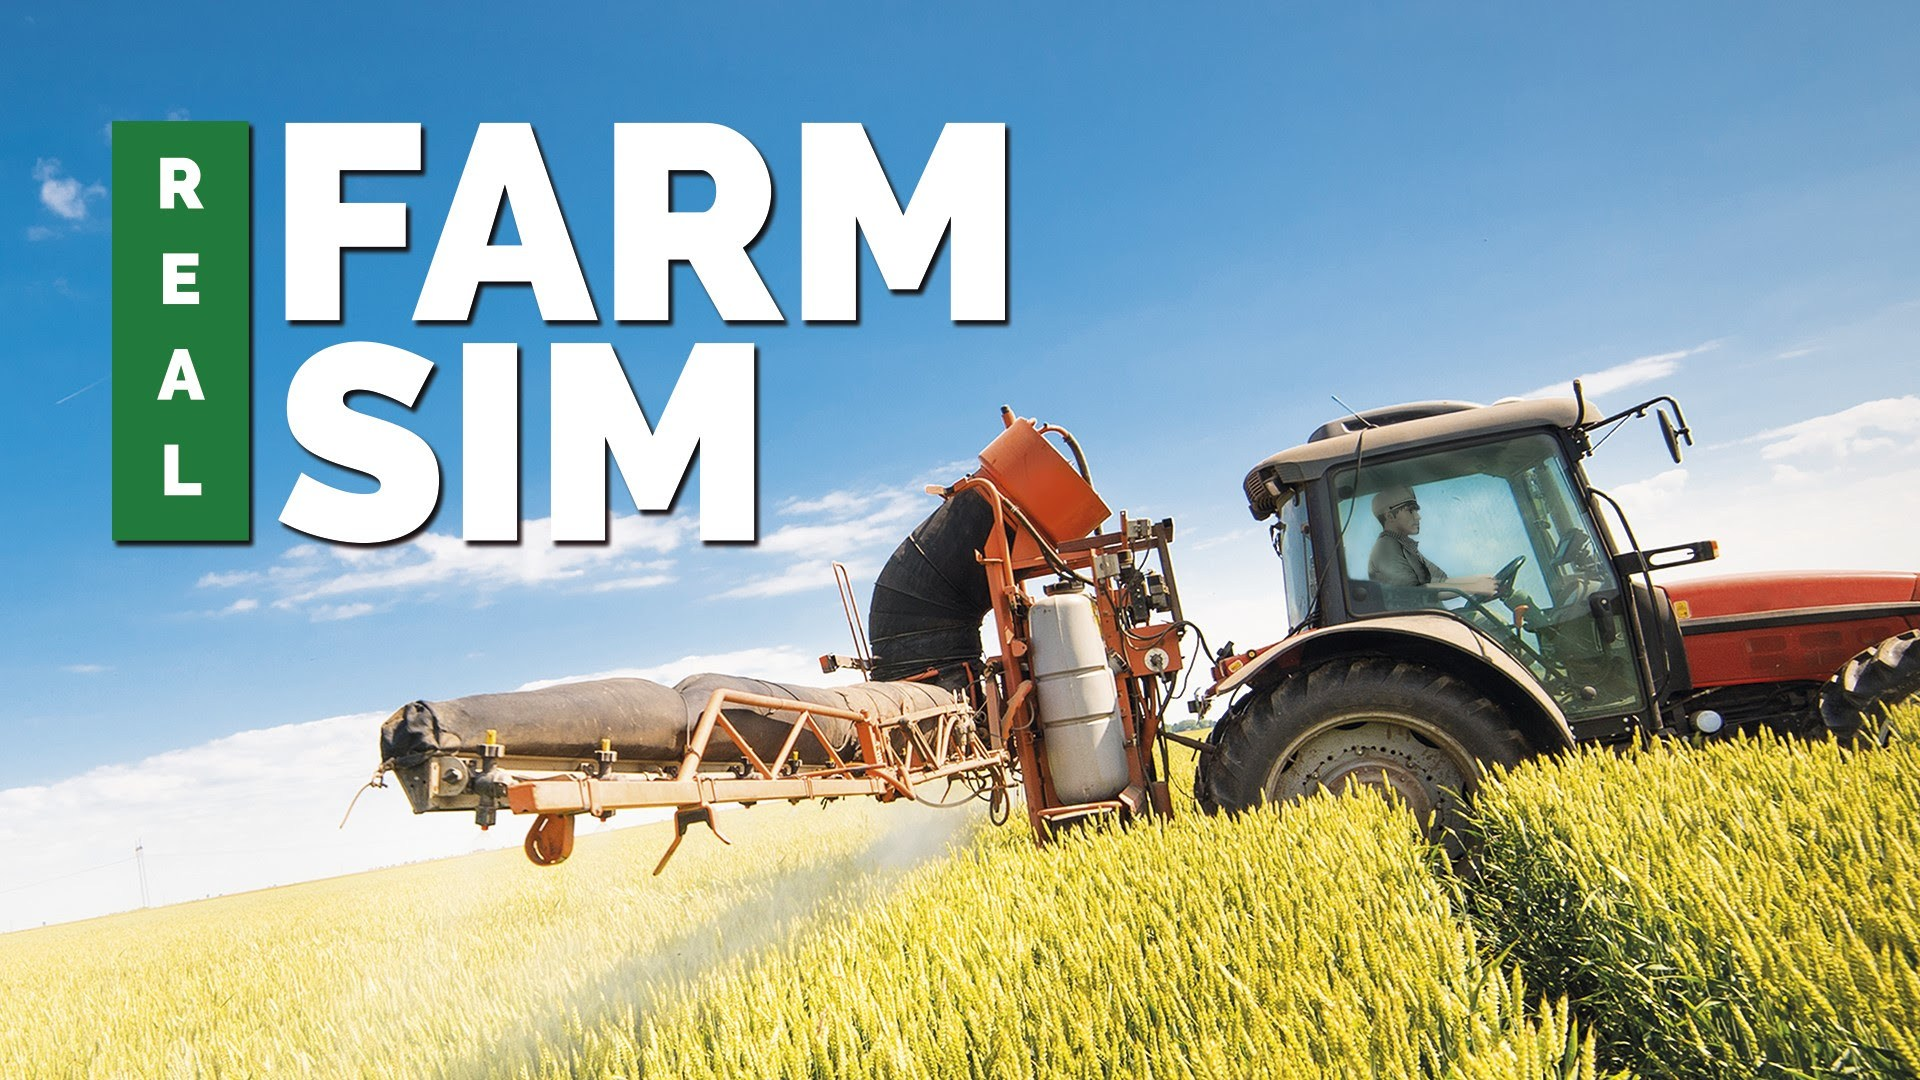 Real Farm Sim: Trailer + Gameplay videos